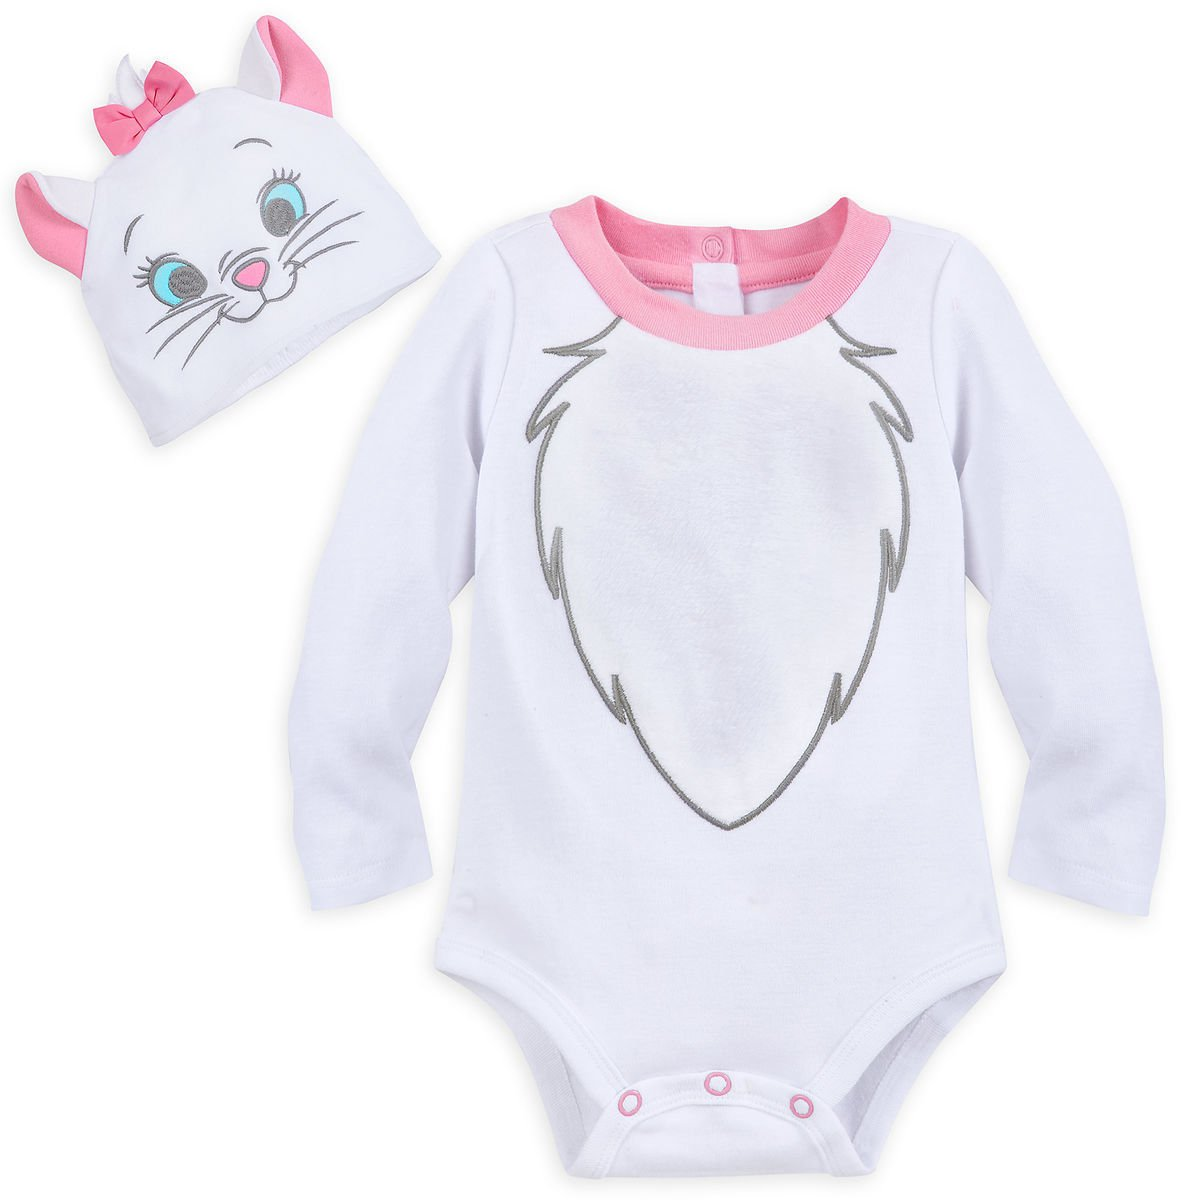 Disney Store Marie Baby Costume Bodysuit Hat 18-24 Months 2018 New